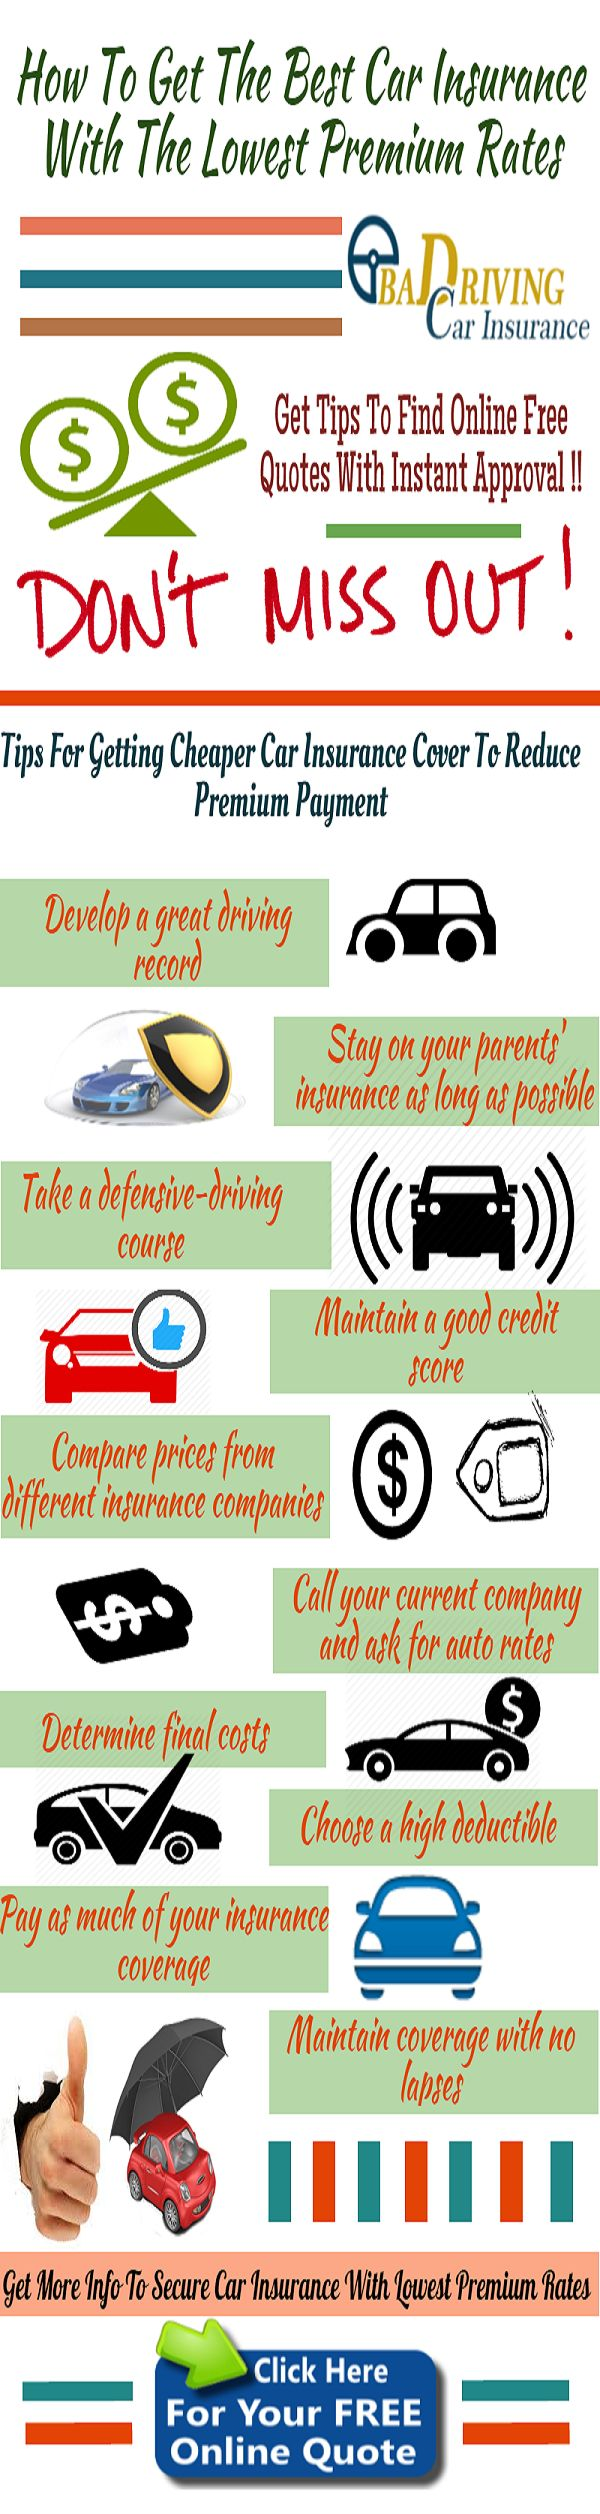 Elephant Auto Insurance Quote Glamorous 9 Best Carauto Insurance Infographic Images On Pinterest . Decorating Inspiration